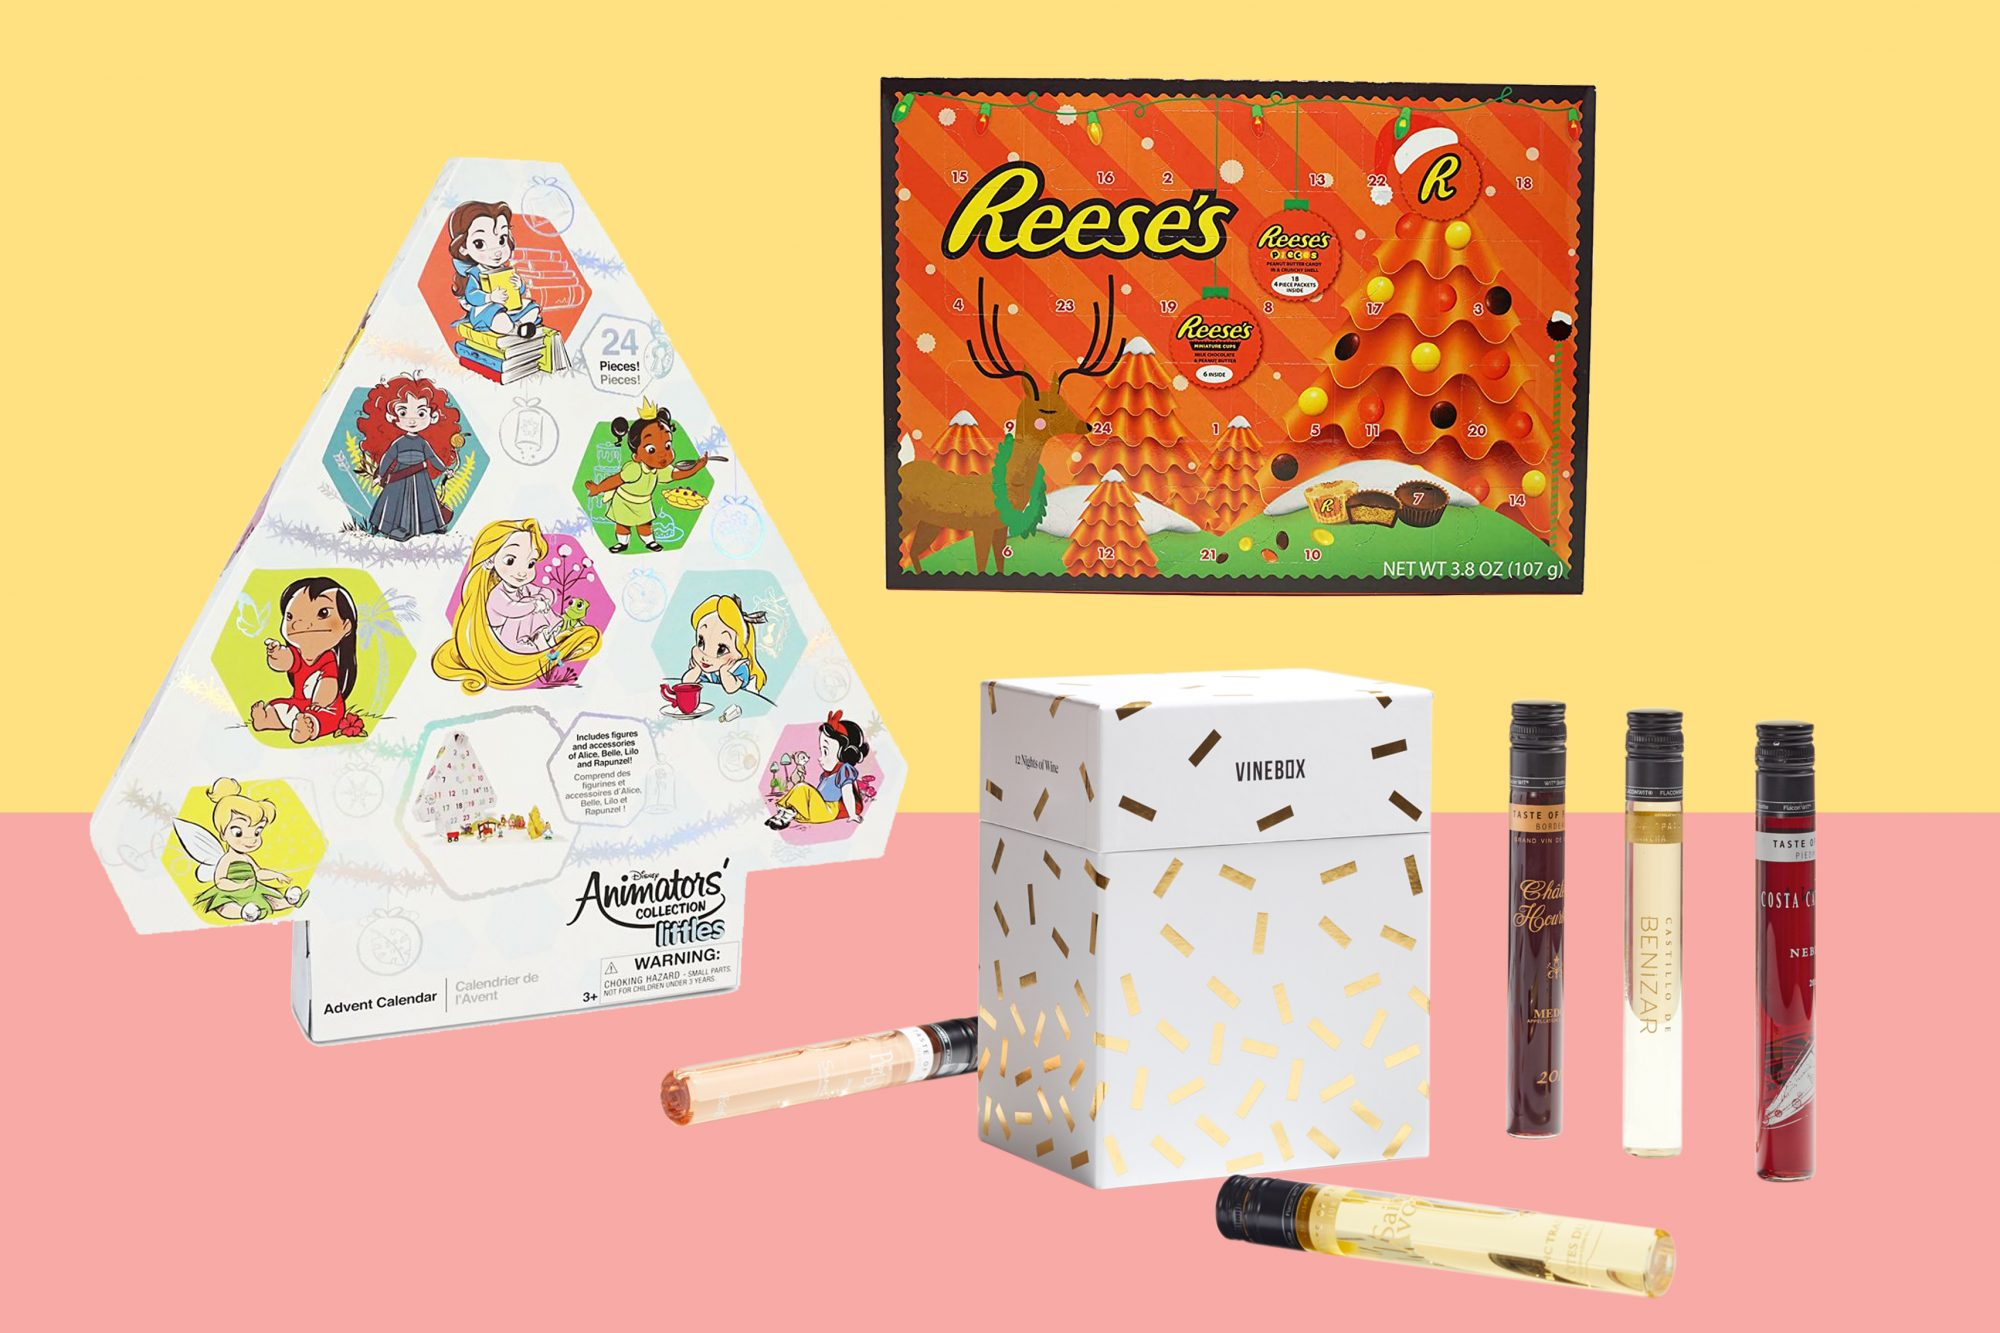 advent calendar reese's vinebox disney